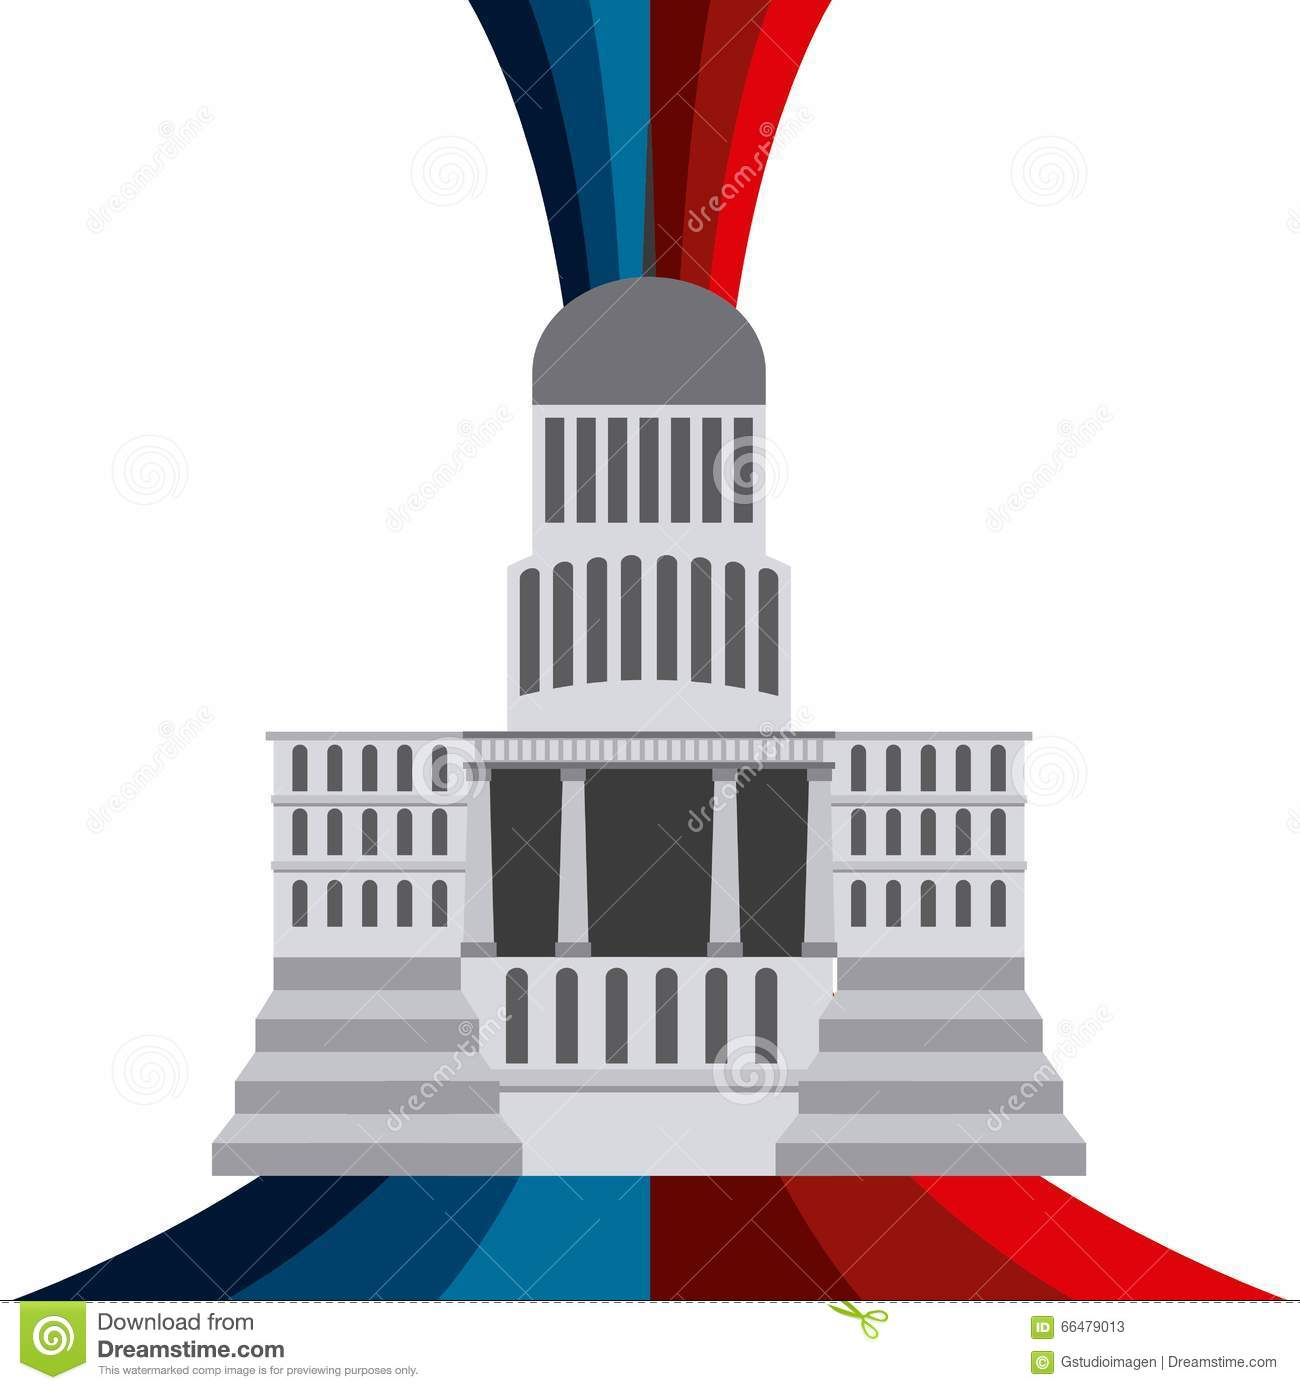 Elections day design